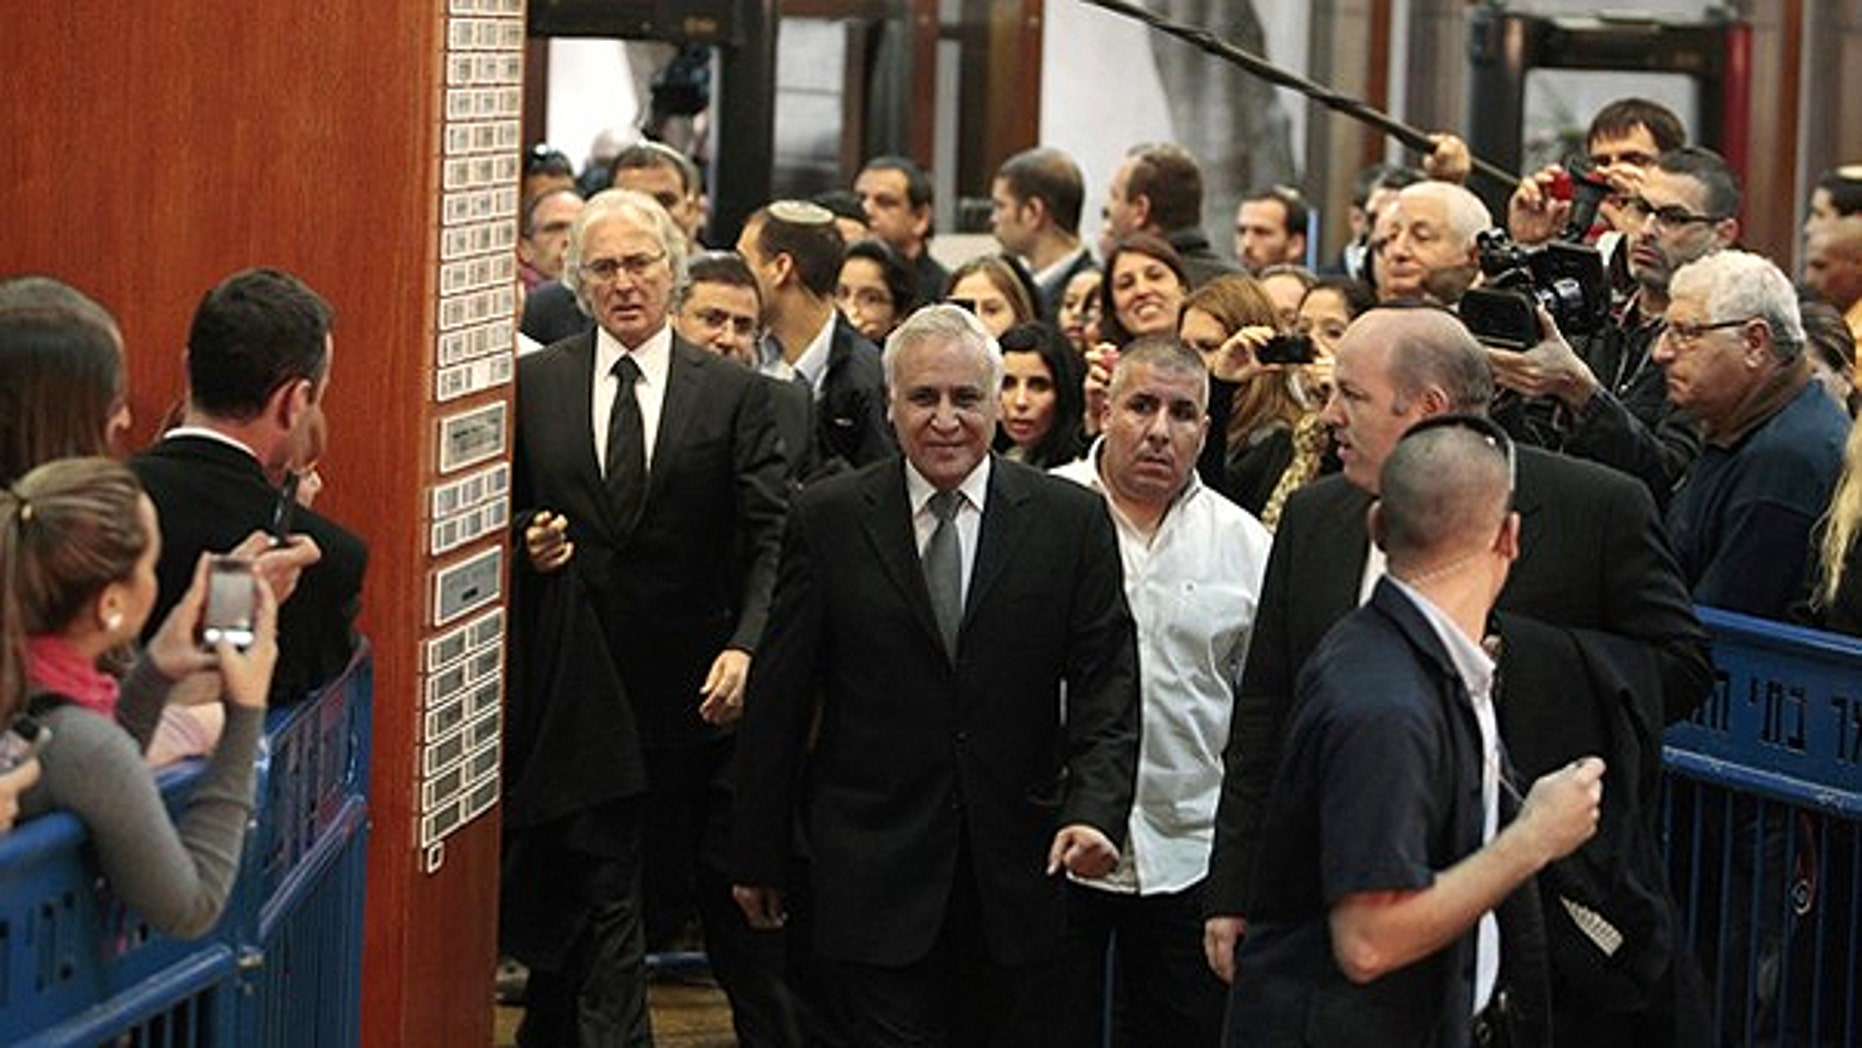 Dec. 30: Israel's former president Moshe Katsav (C) arrives at Tel Aviv District Court to hear the verdict on charges of rape and sexual misconduct against him.